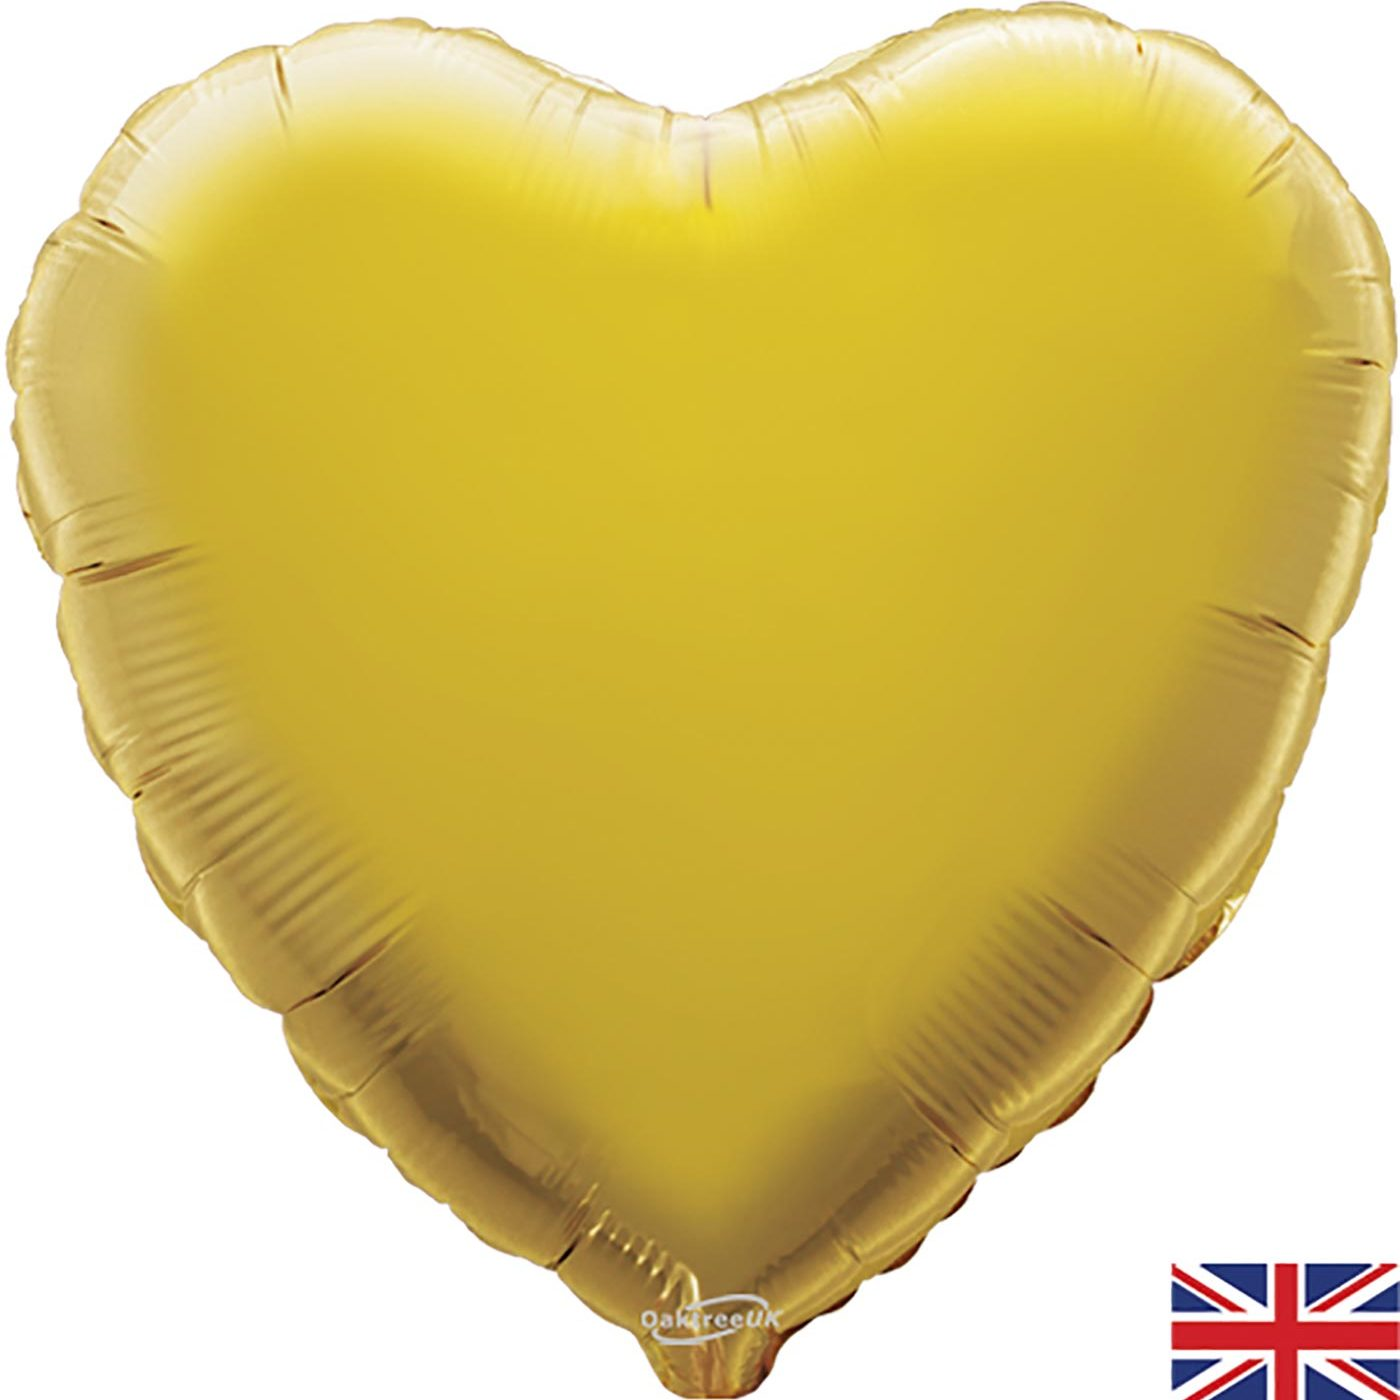 "Oaktree 18"" Gold Heart"